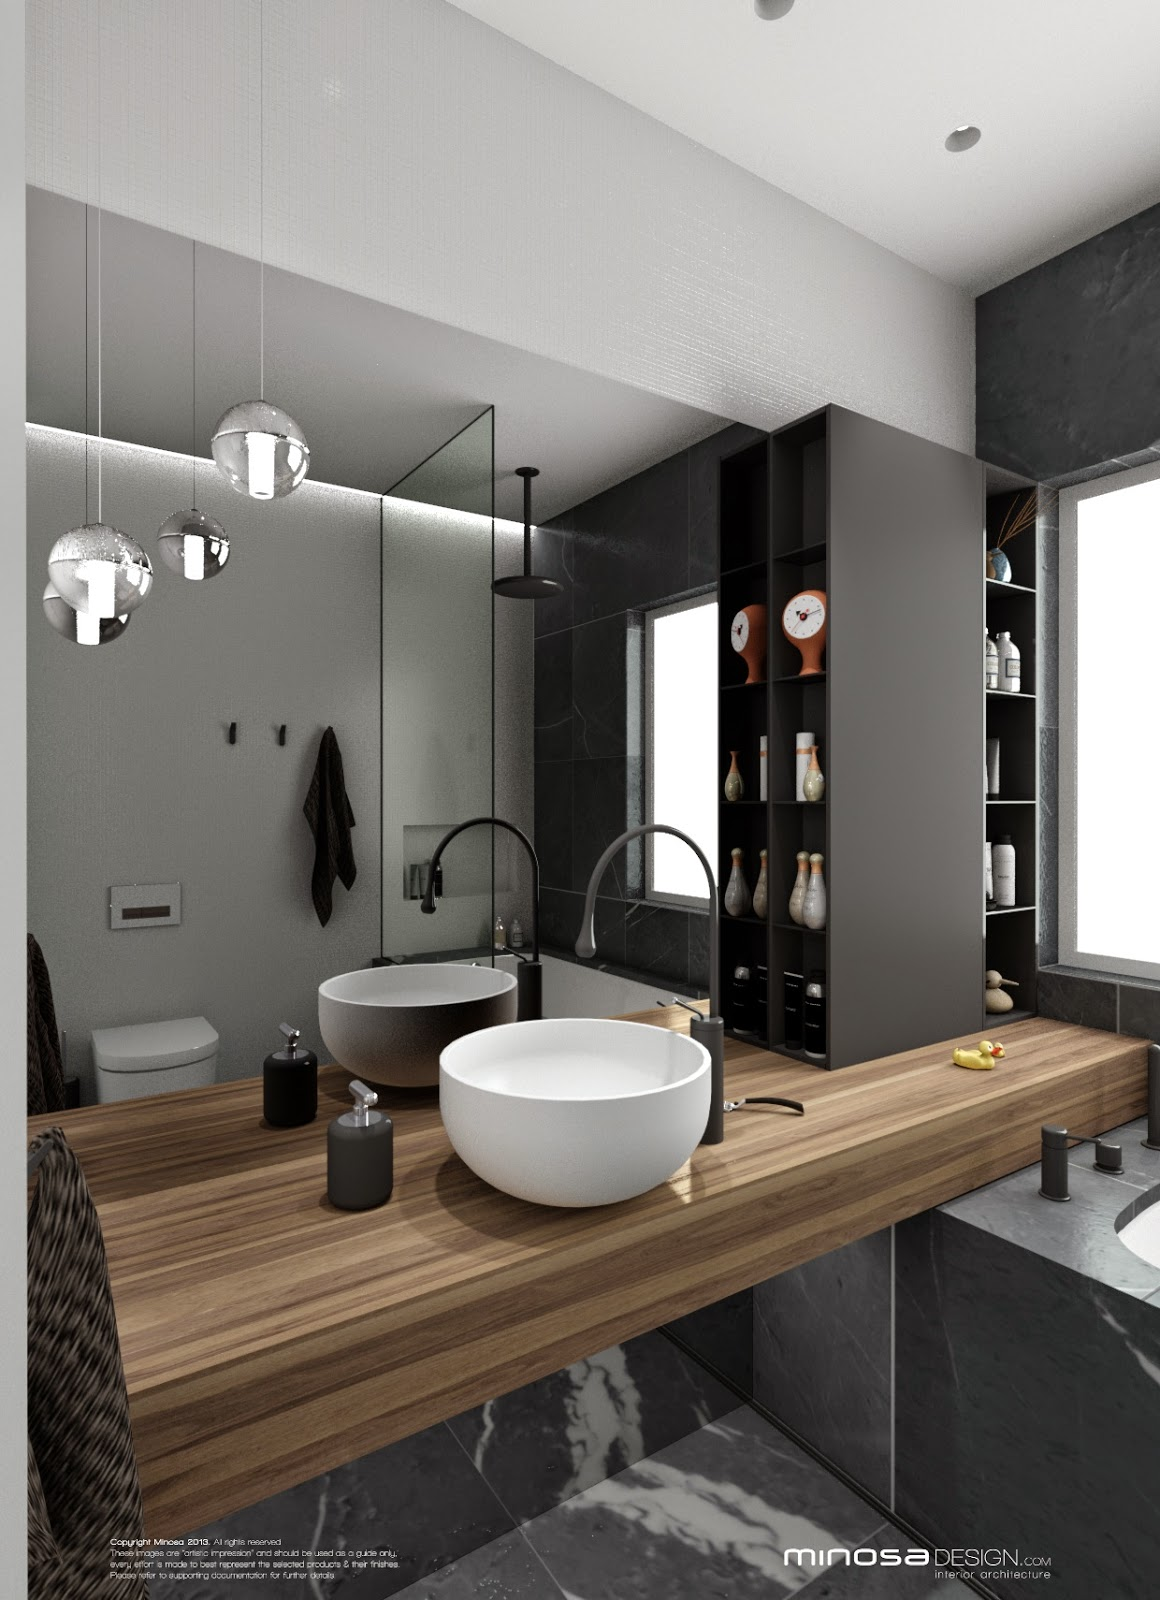 Minosa bathroom design small space feels large for Small space bathroom designs